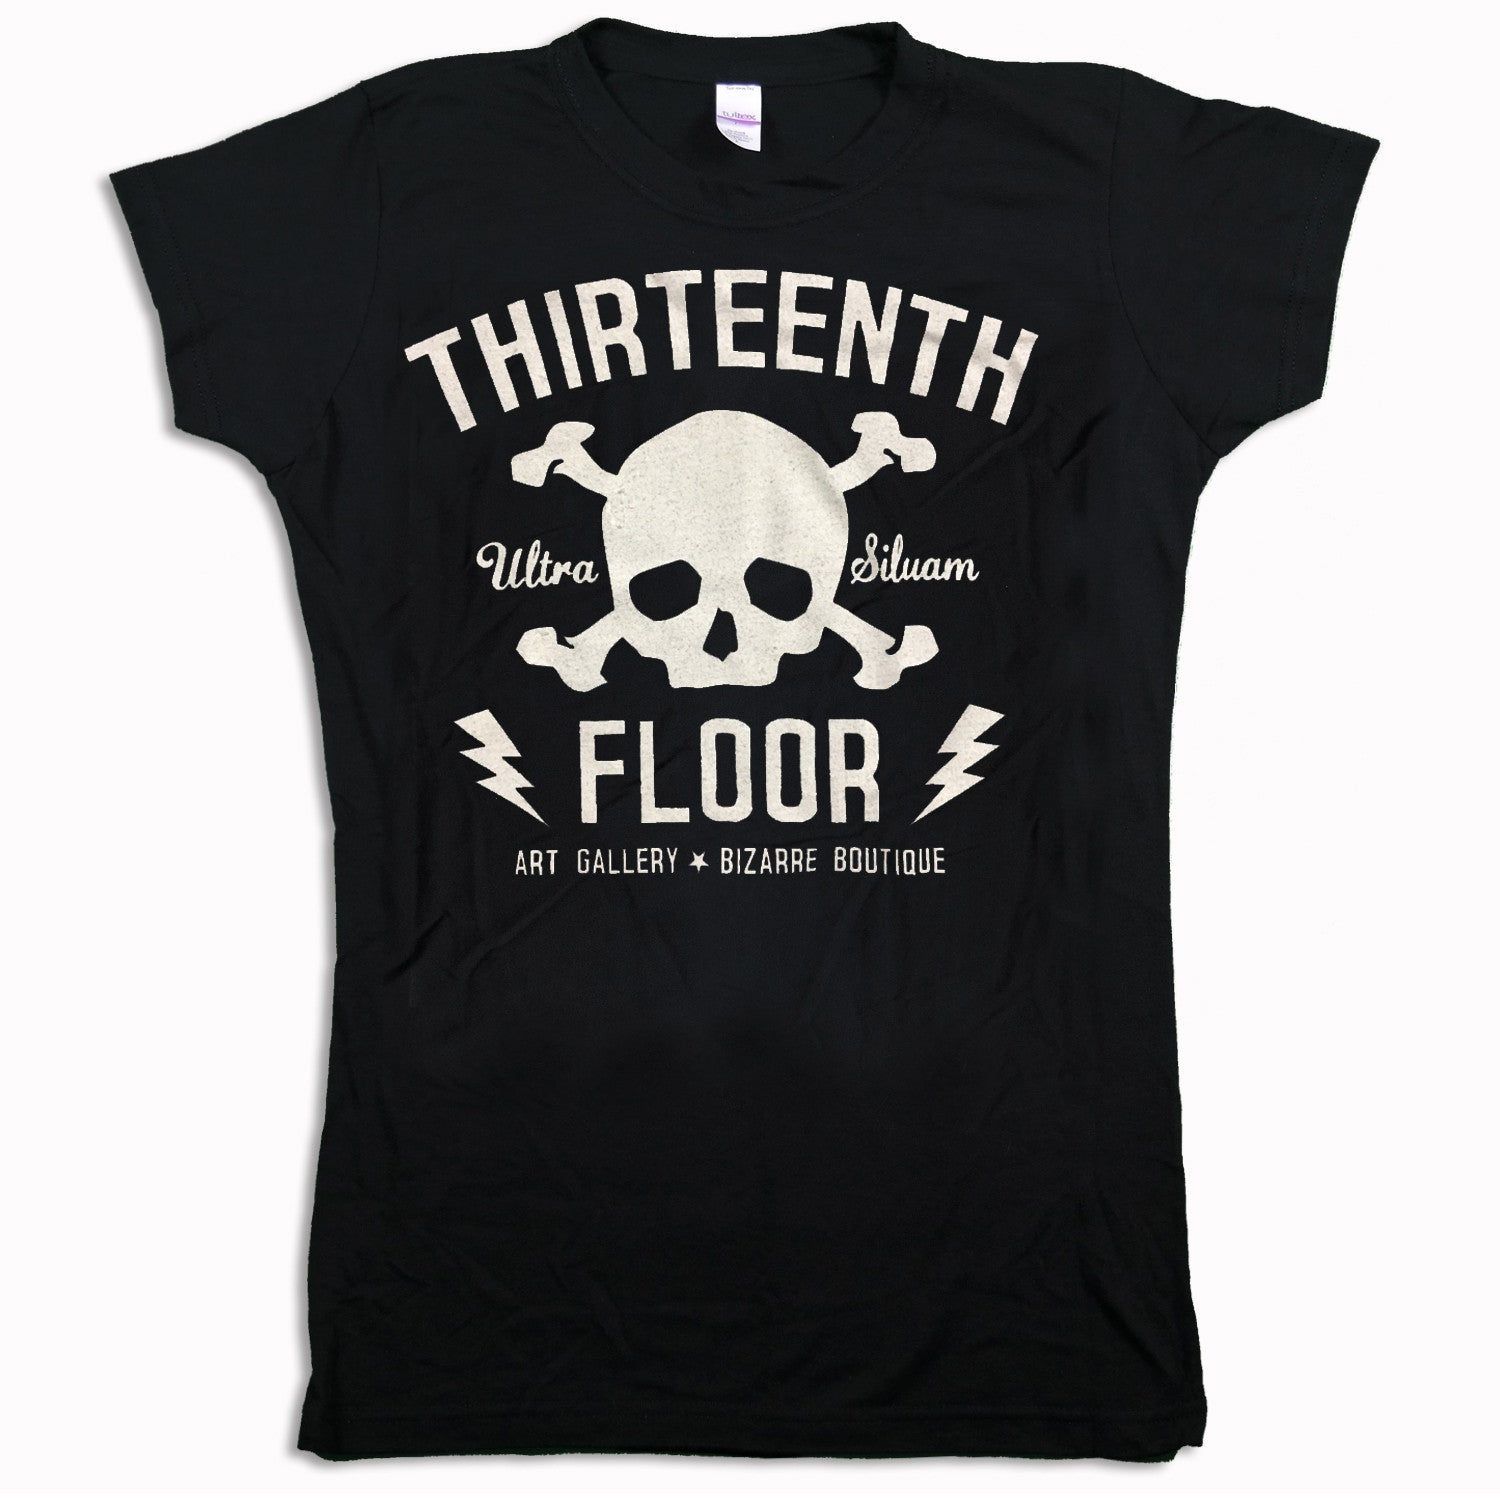 Skull & Bones (White) Women's T-shirt - Thirteenth Floor